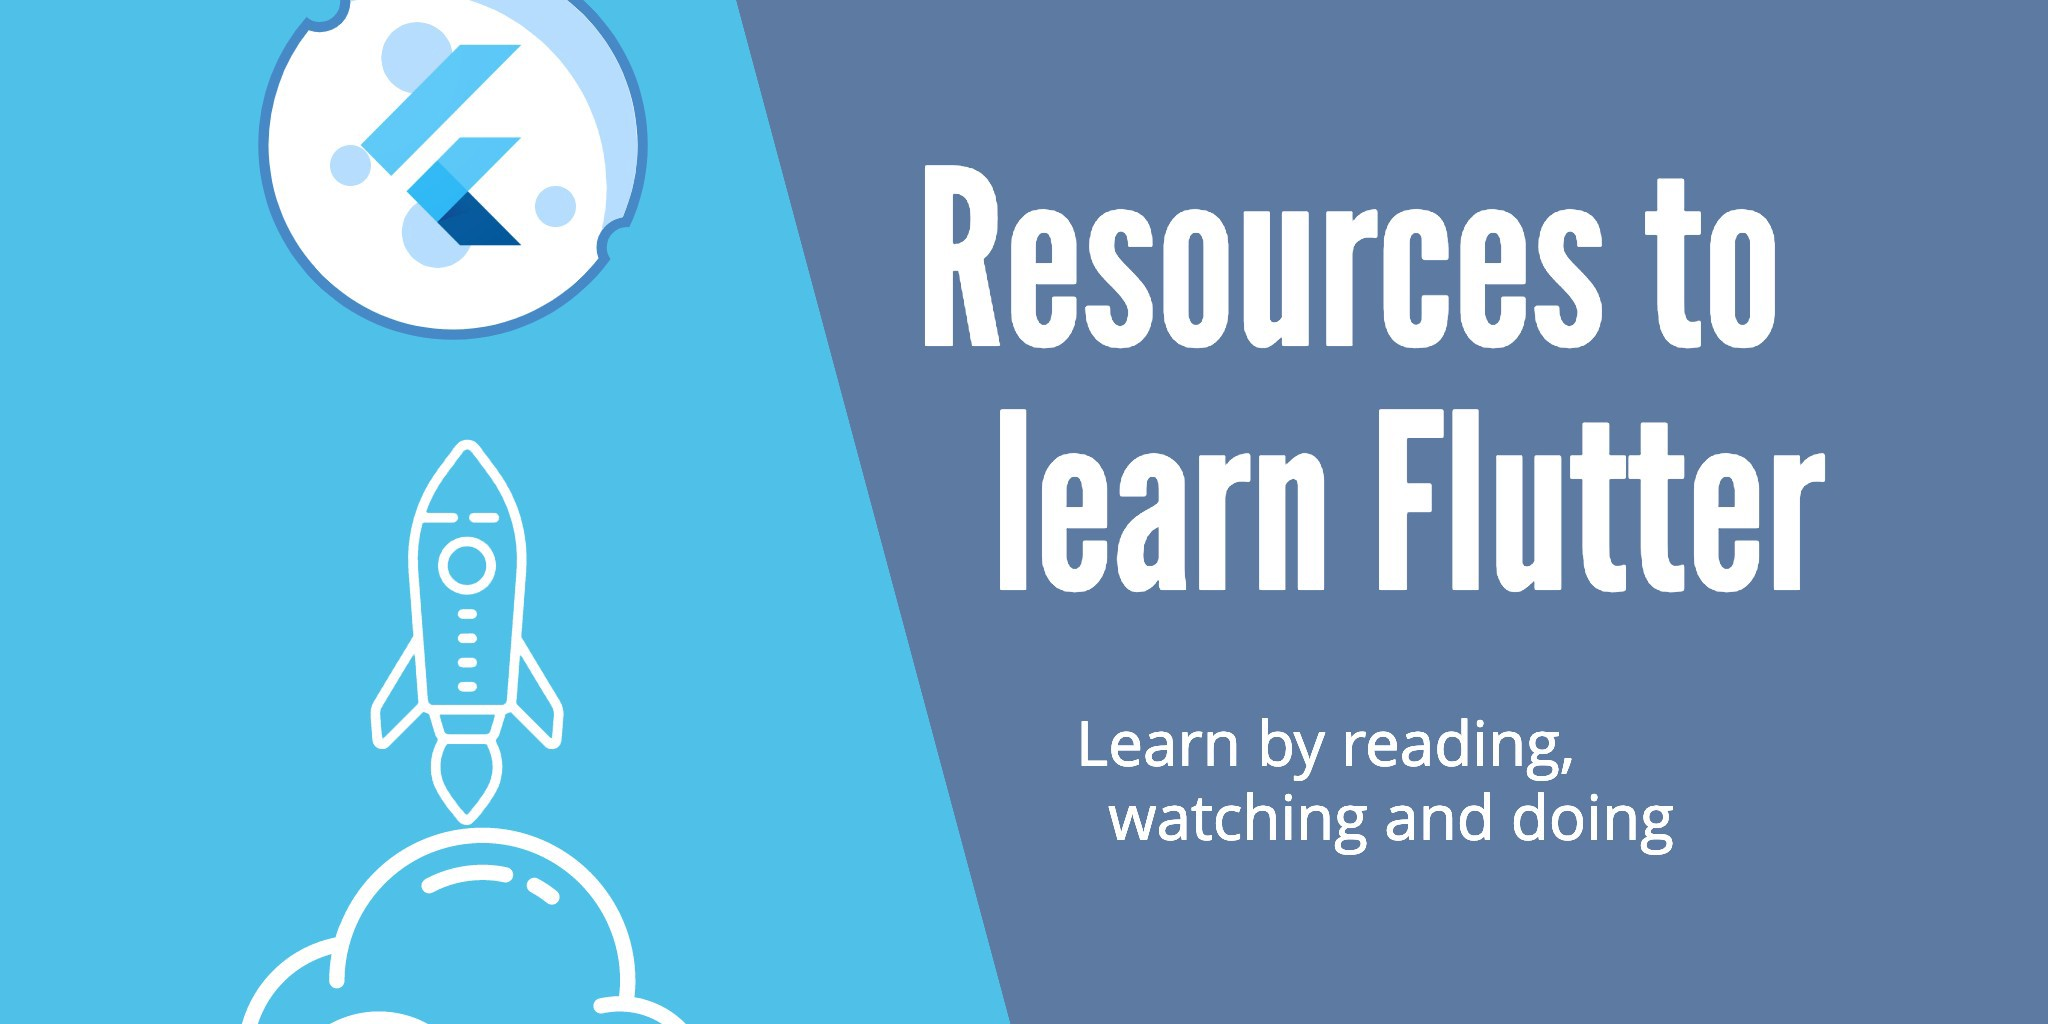 Resources to learn Flutter